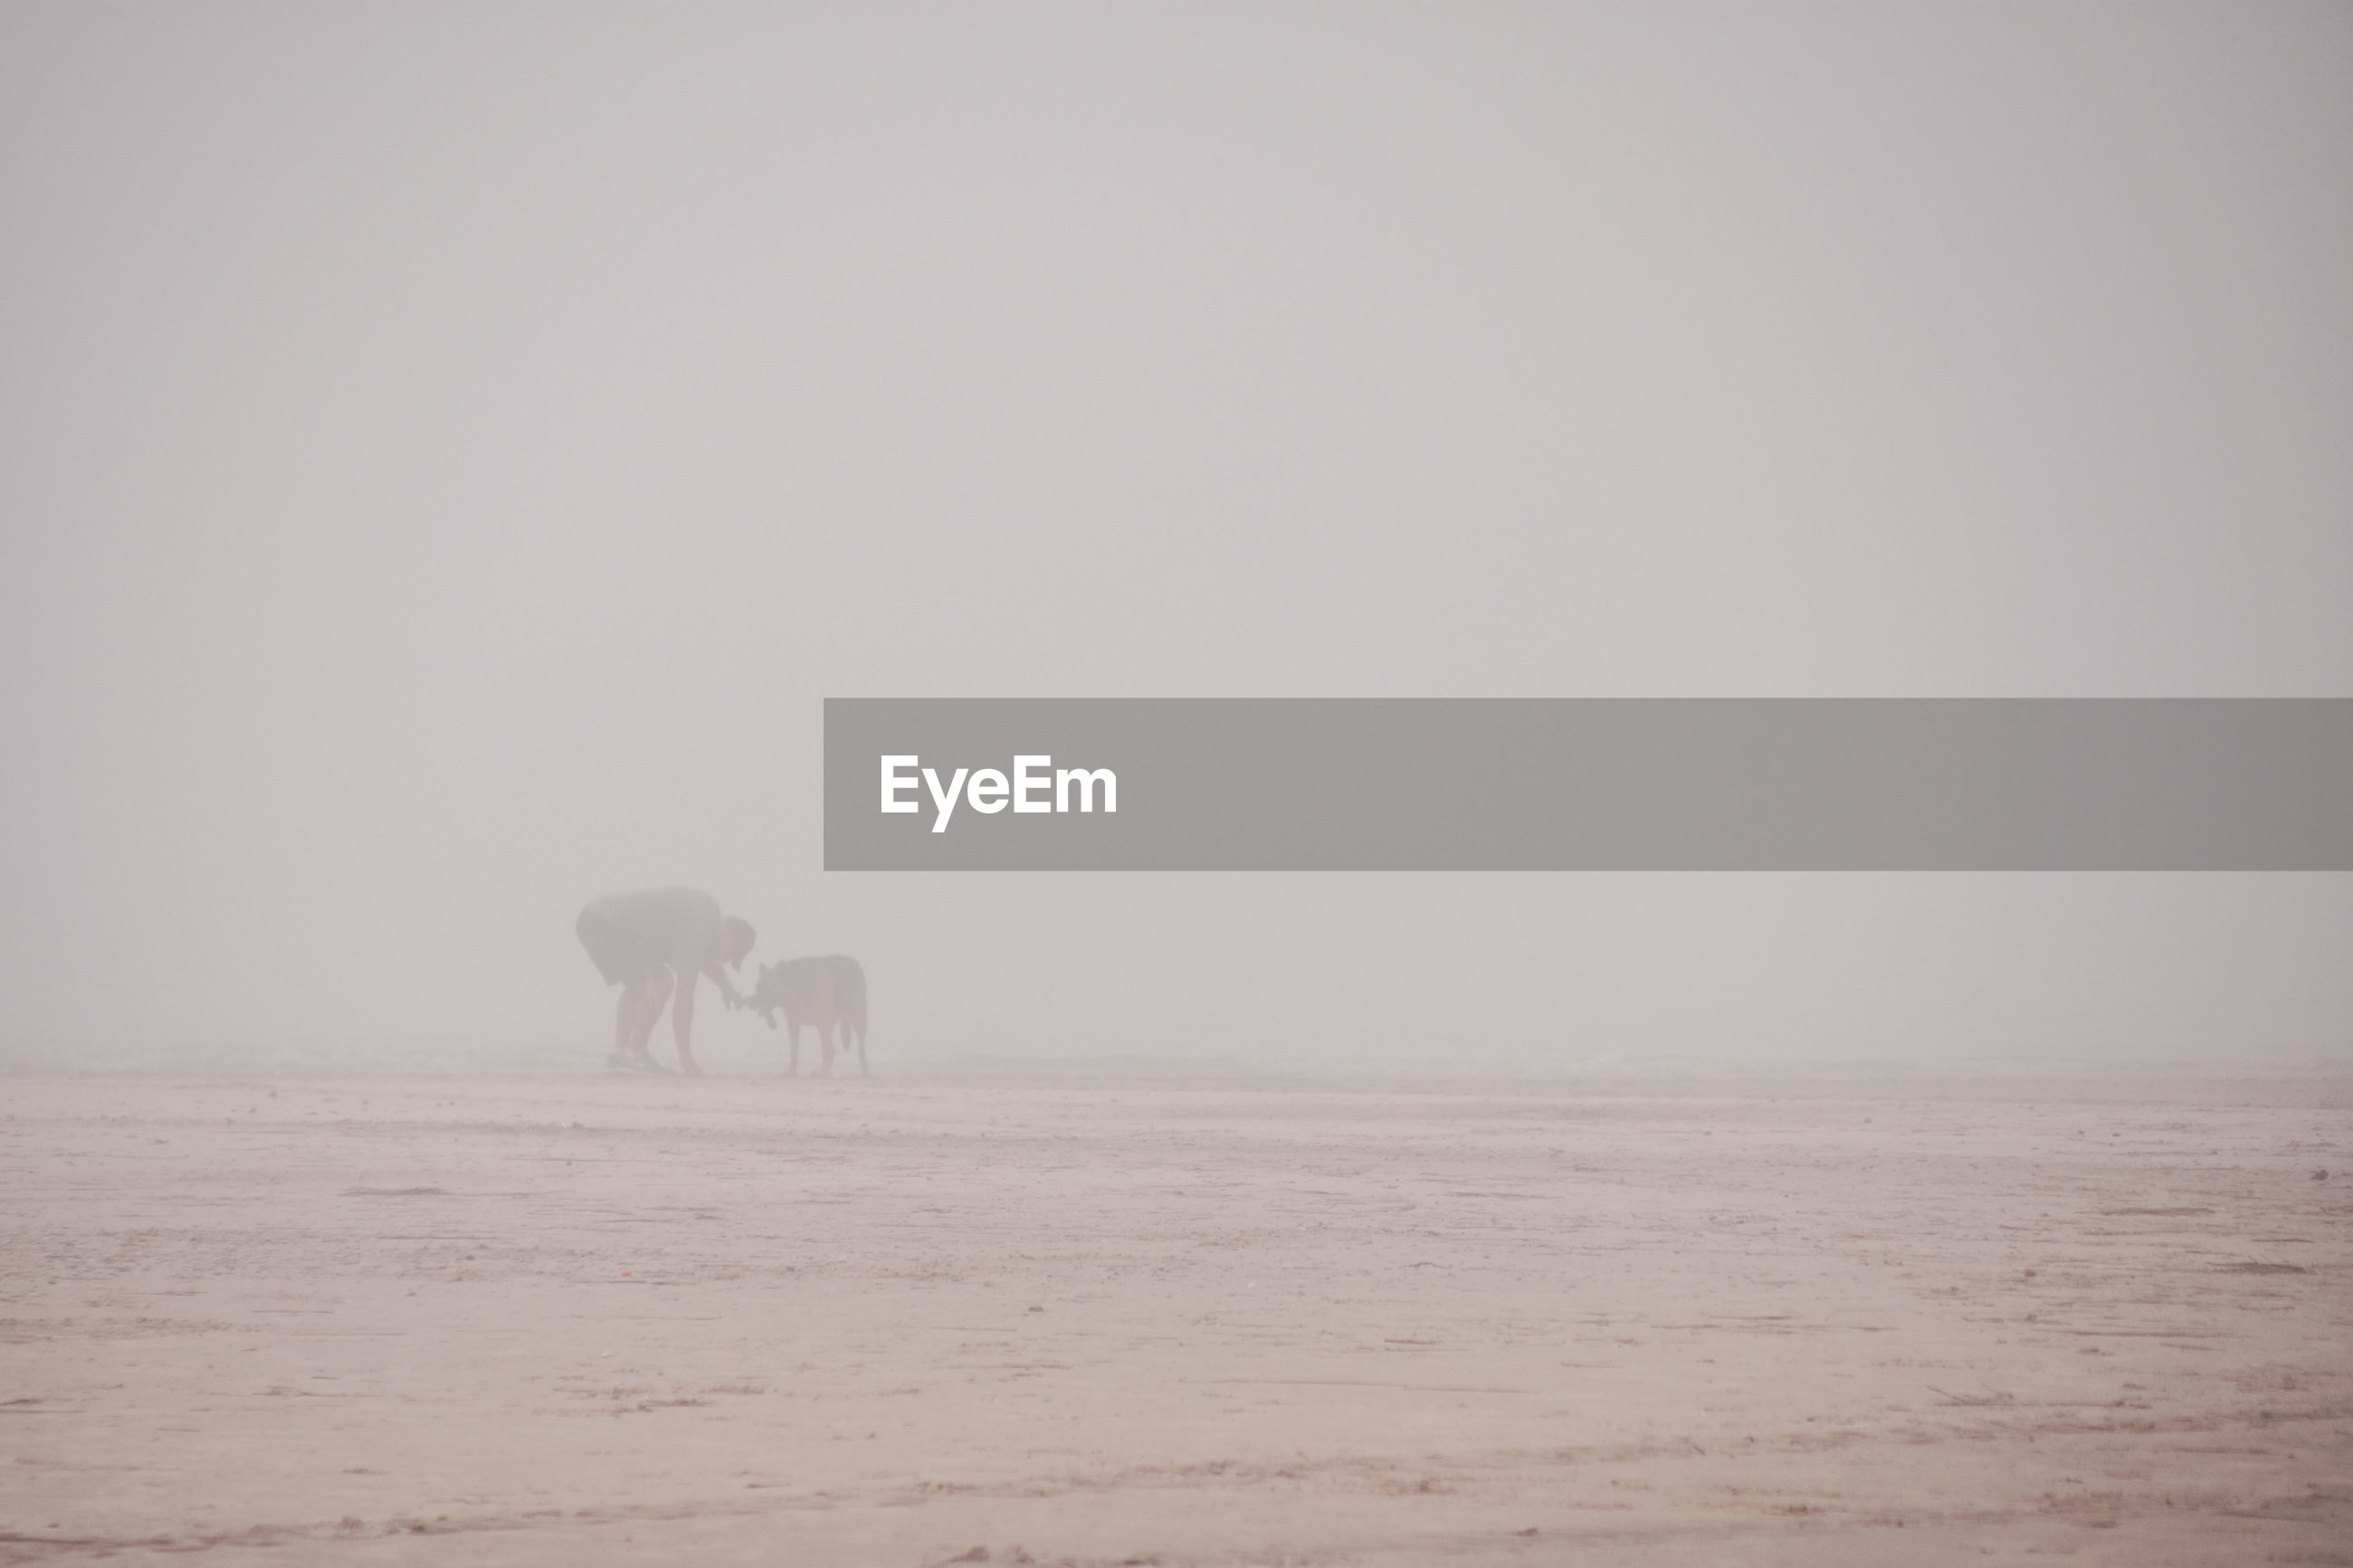 Silhouette man with dog standing on field against sky during foggy weather